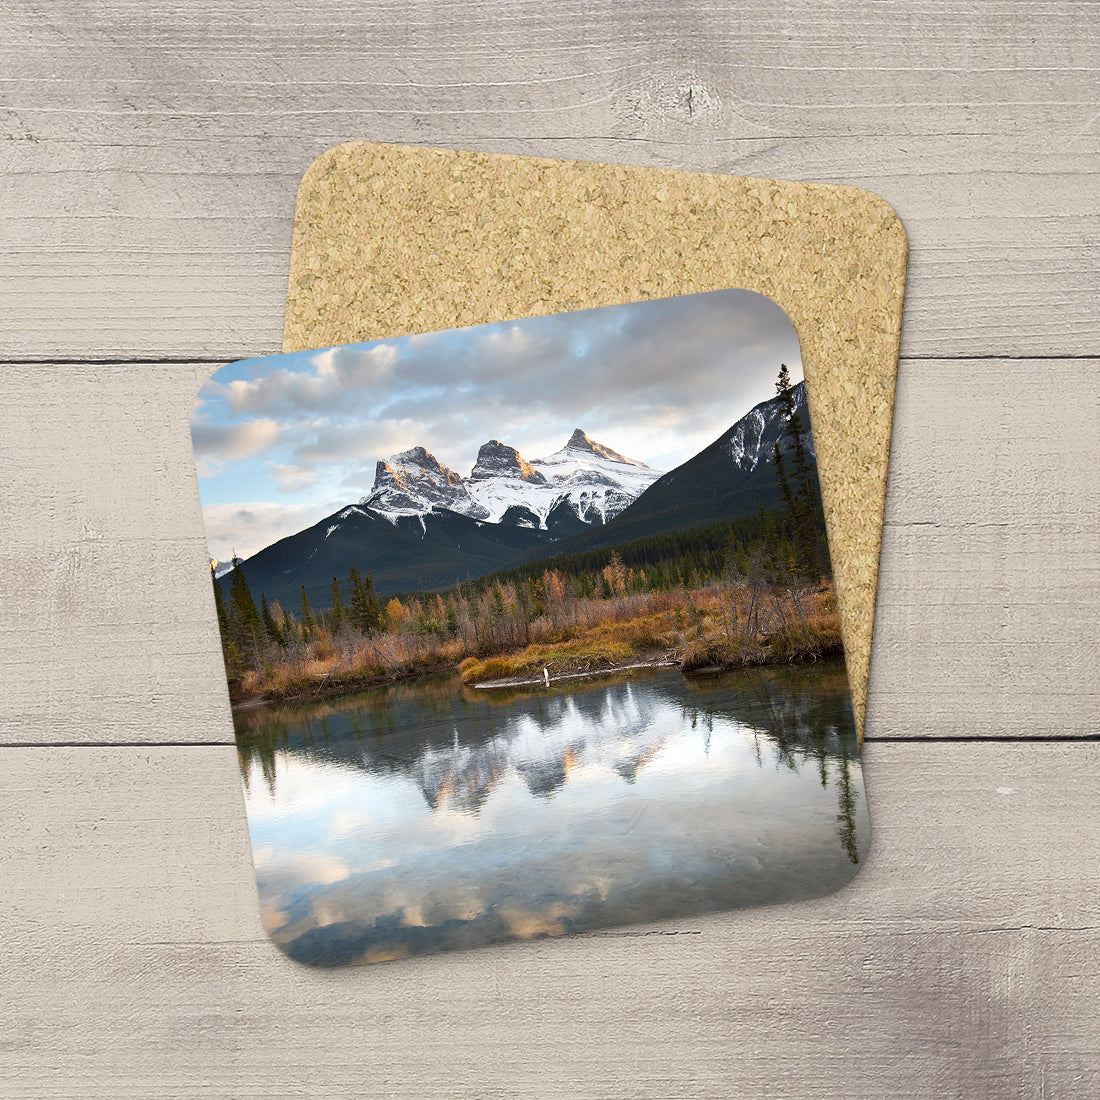 Photo Coaster of Three Sisters Mountain in Canmore in Canadian Rockies. Handmade in Edmonton, Alberta by Canadian photographer & artist Larry Jang.